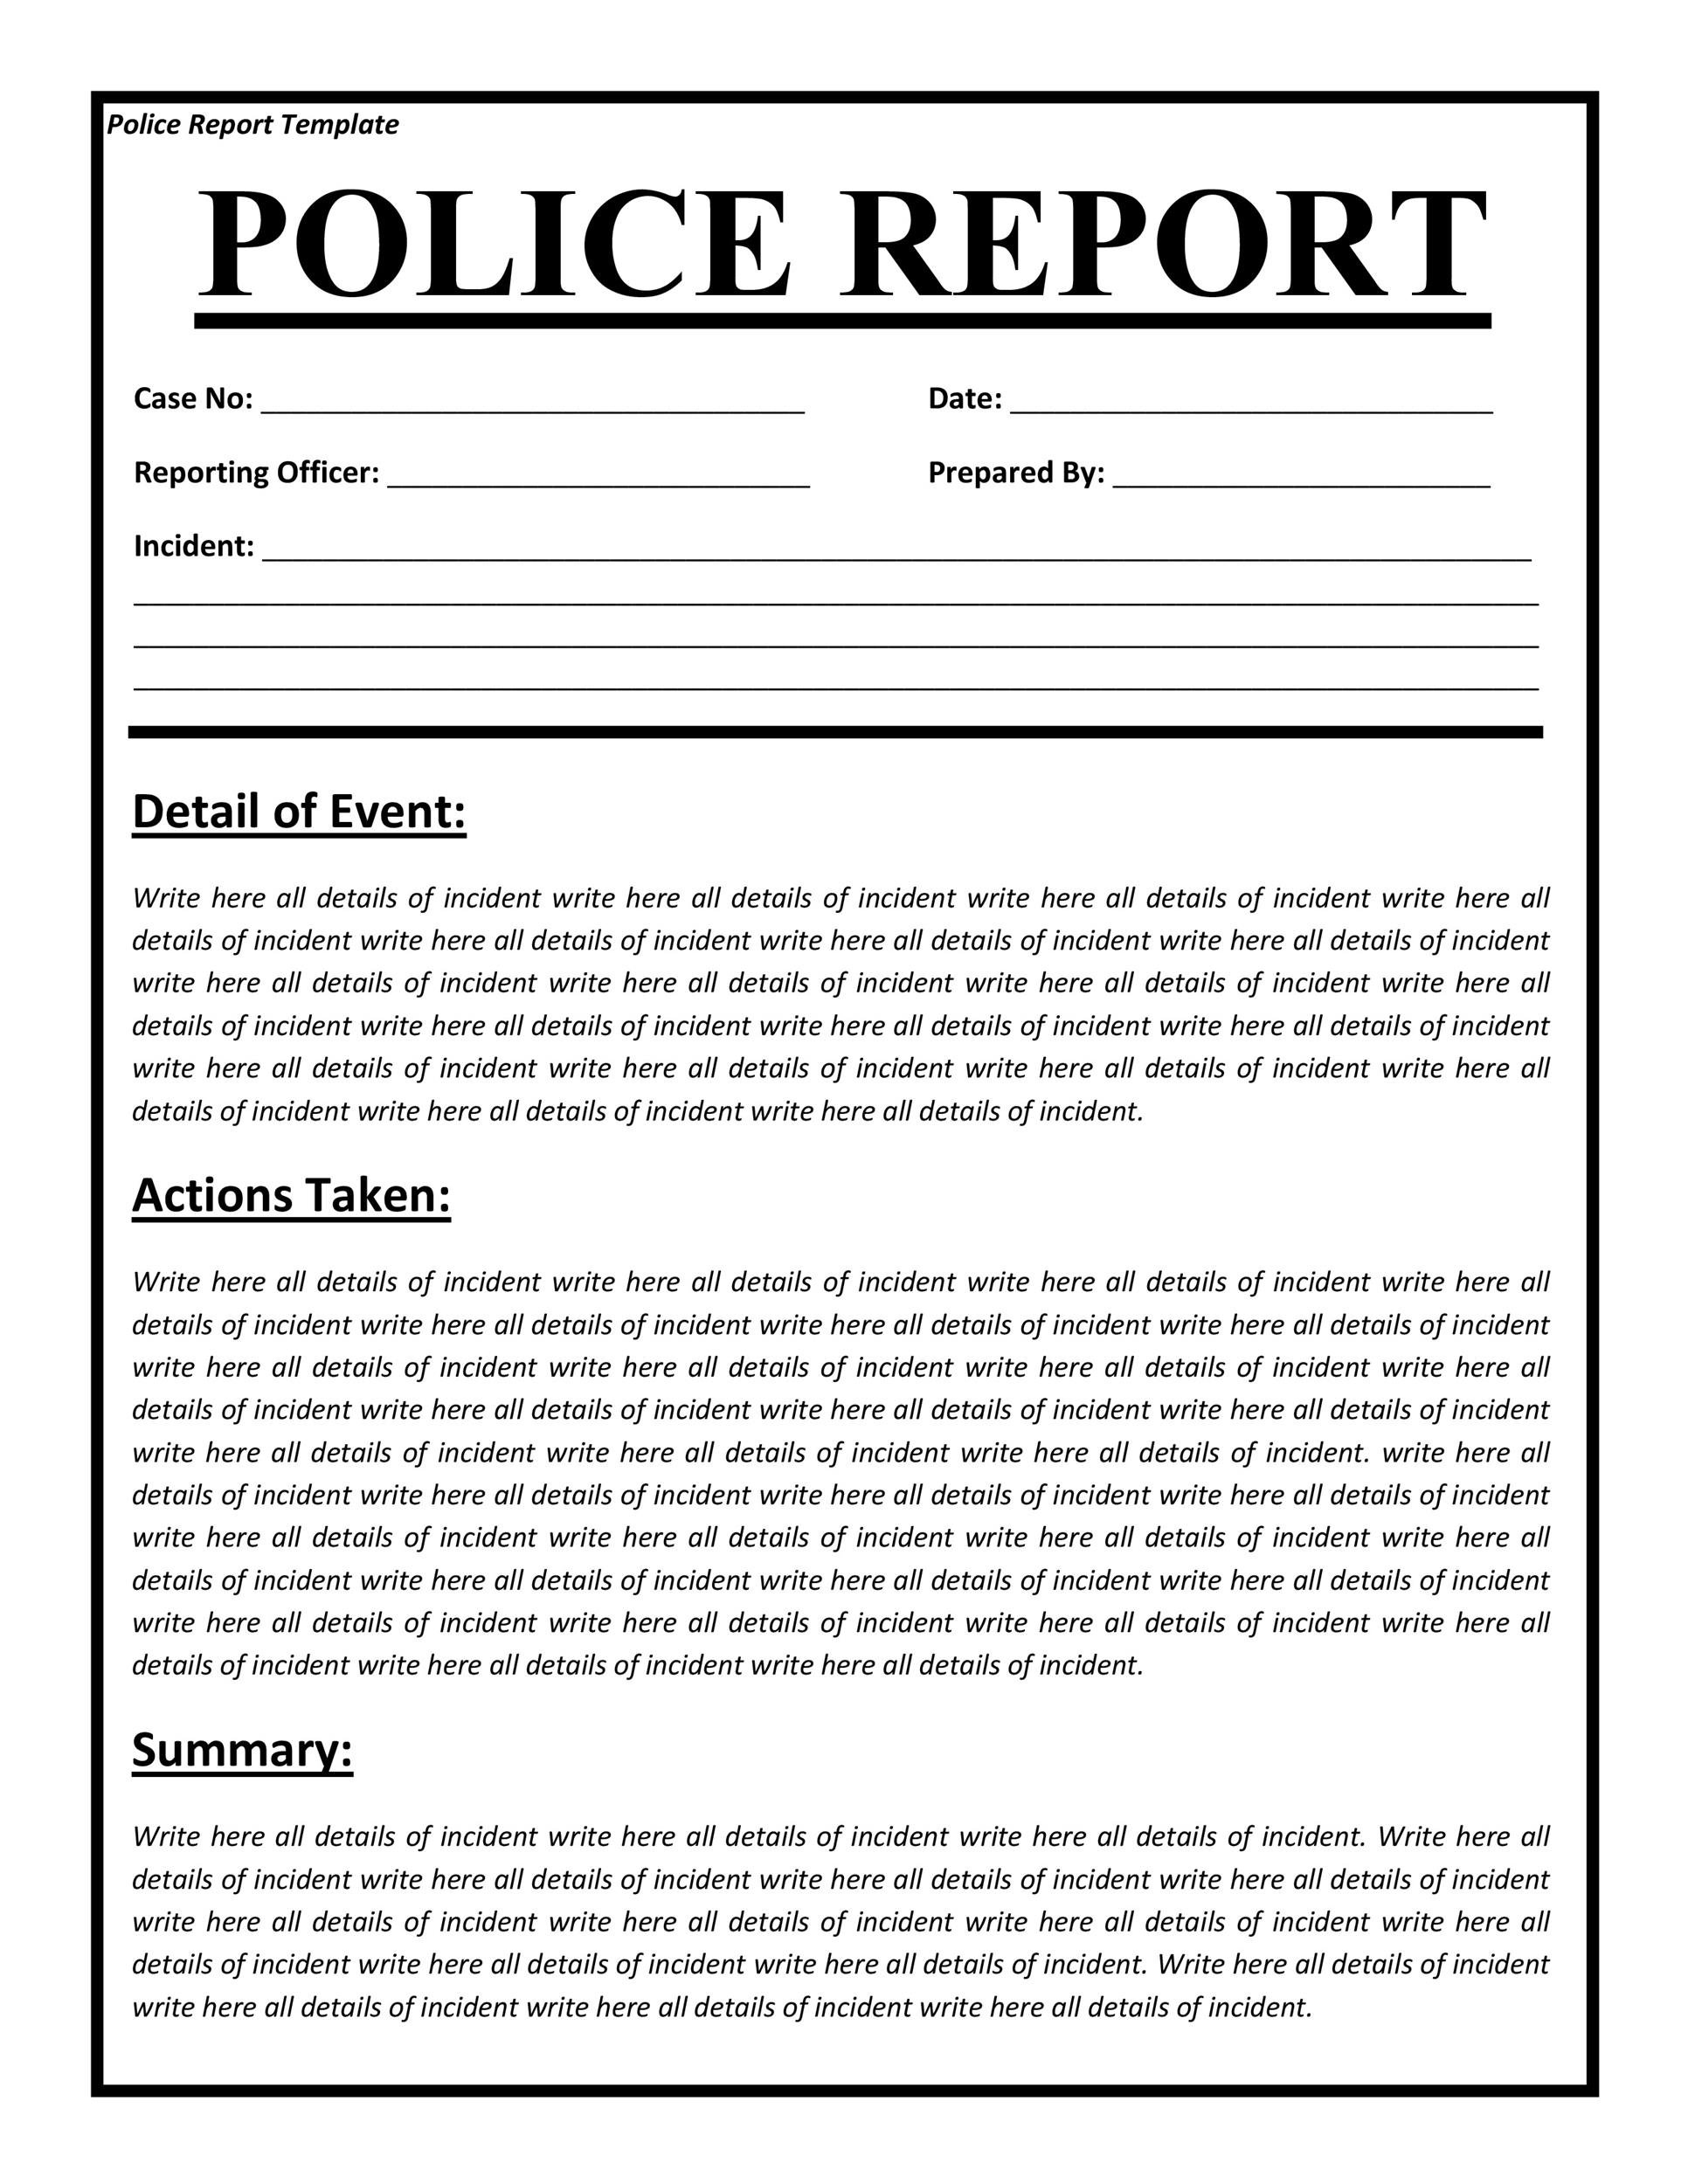 Free police report template 03